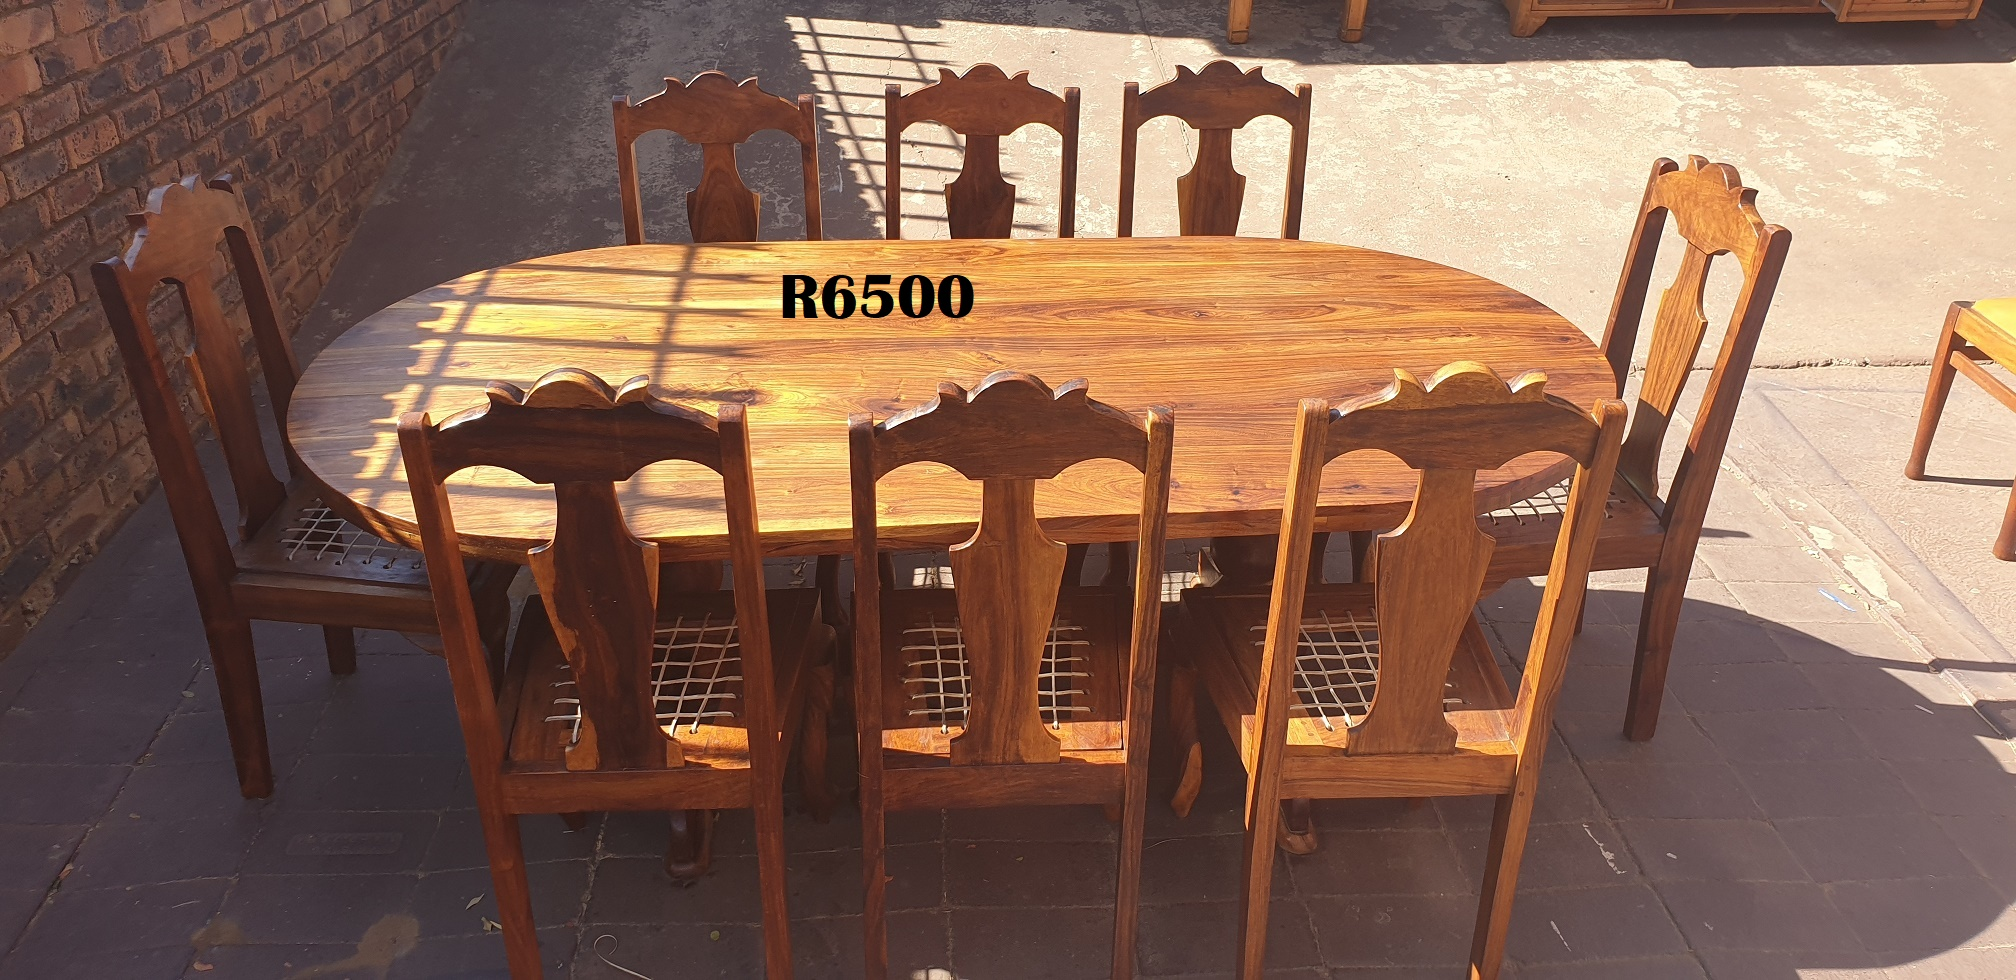 Classic Teak Dining Suite with 8 Chairs (2110x1100x735)